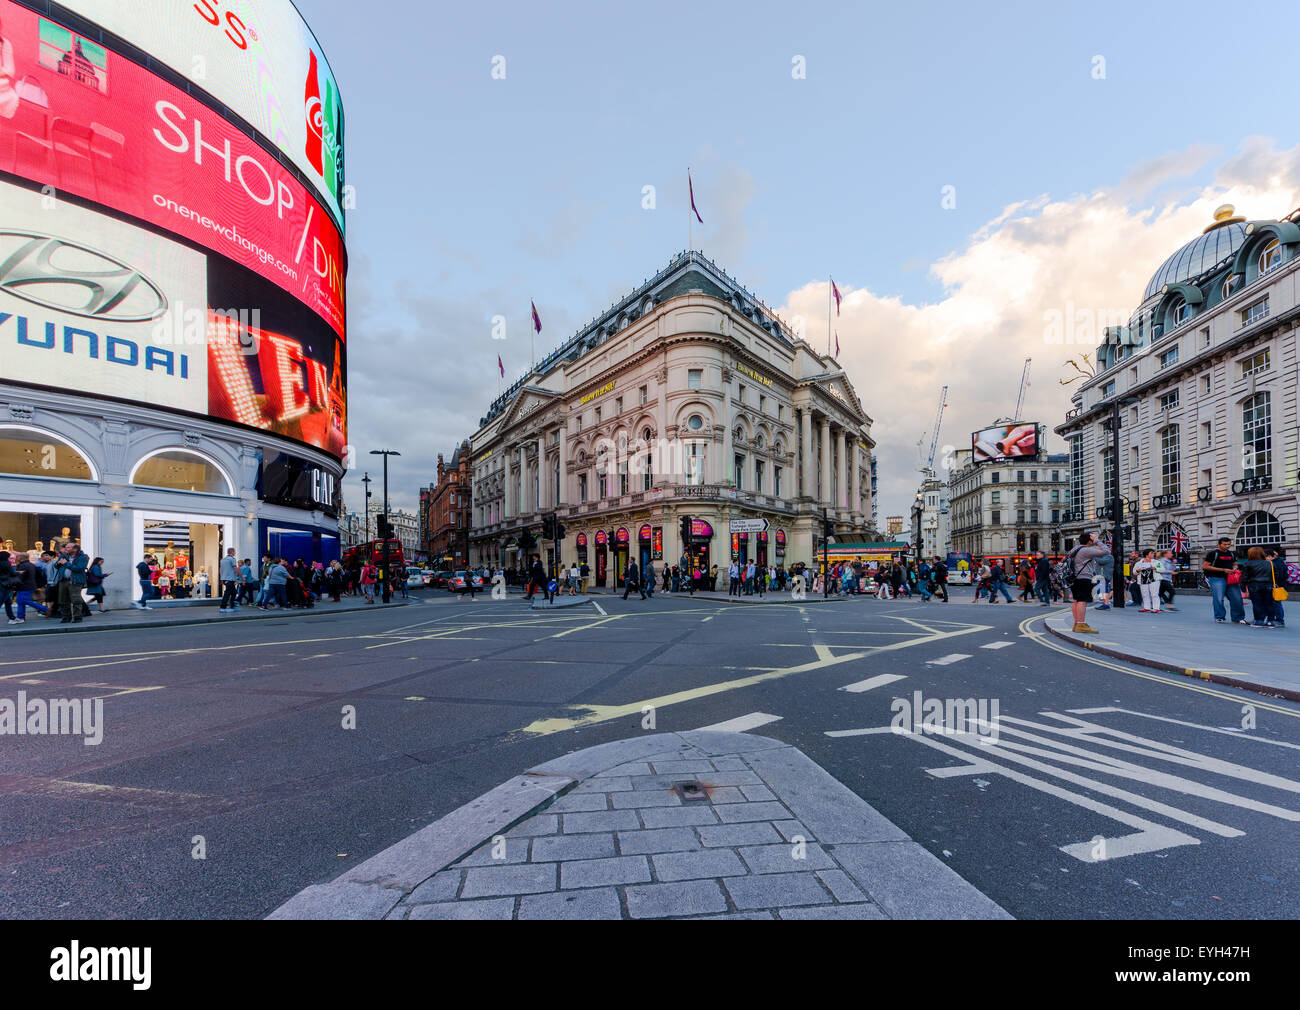 Piccadilly Circus street view London, England - Stock Image